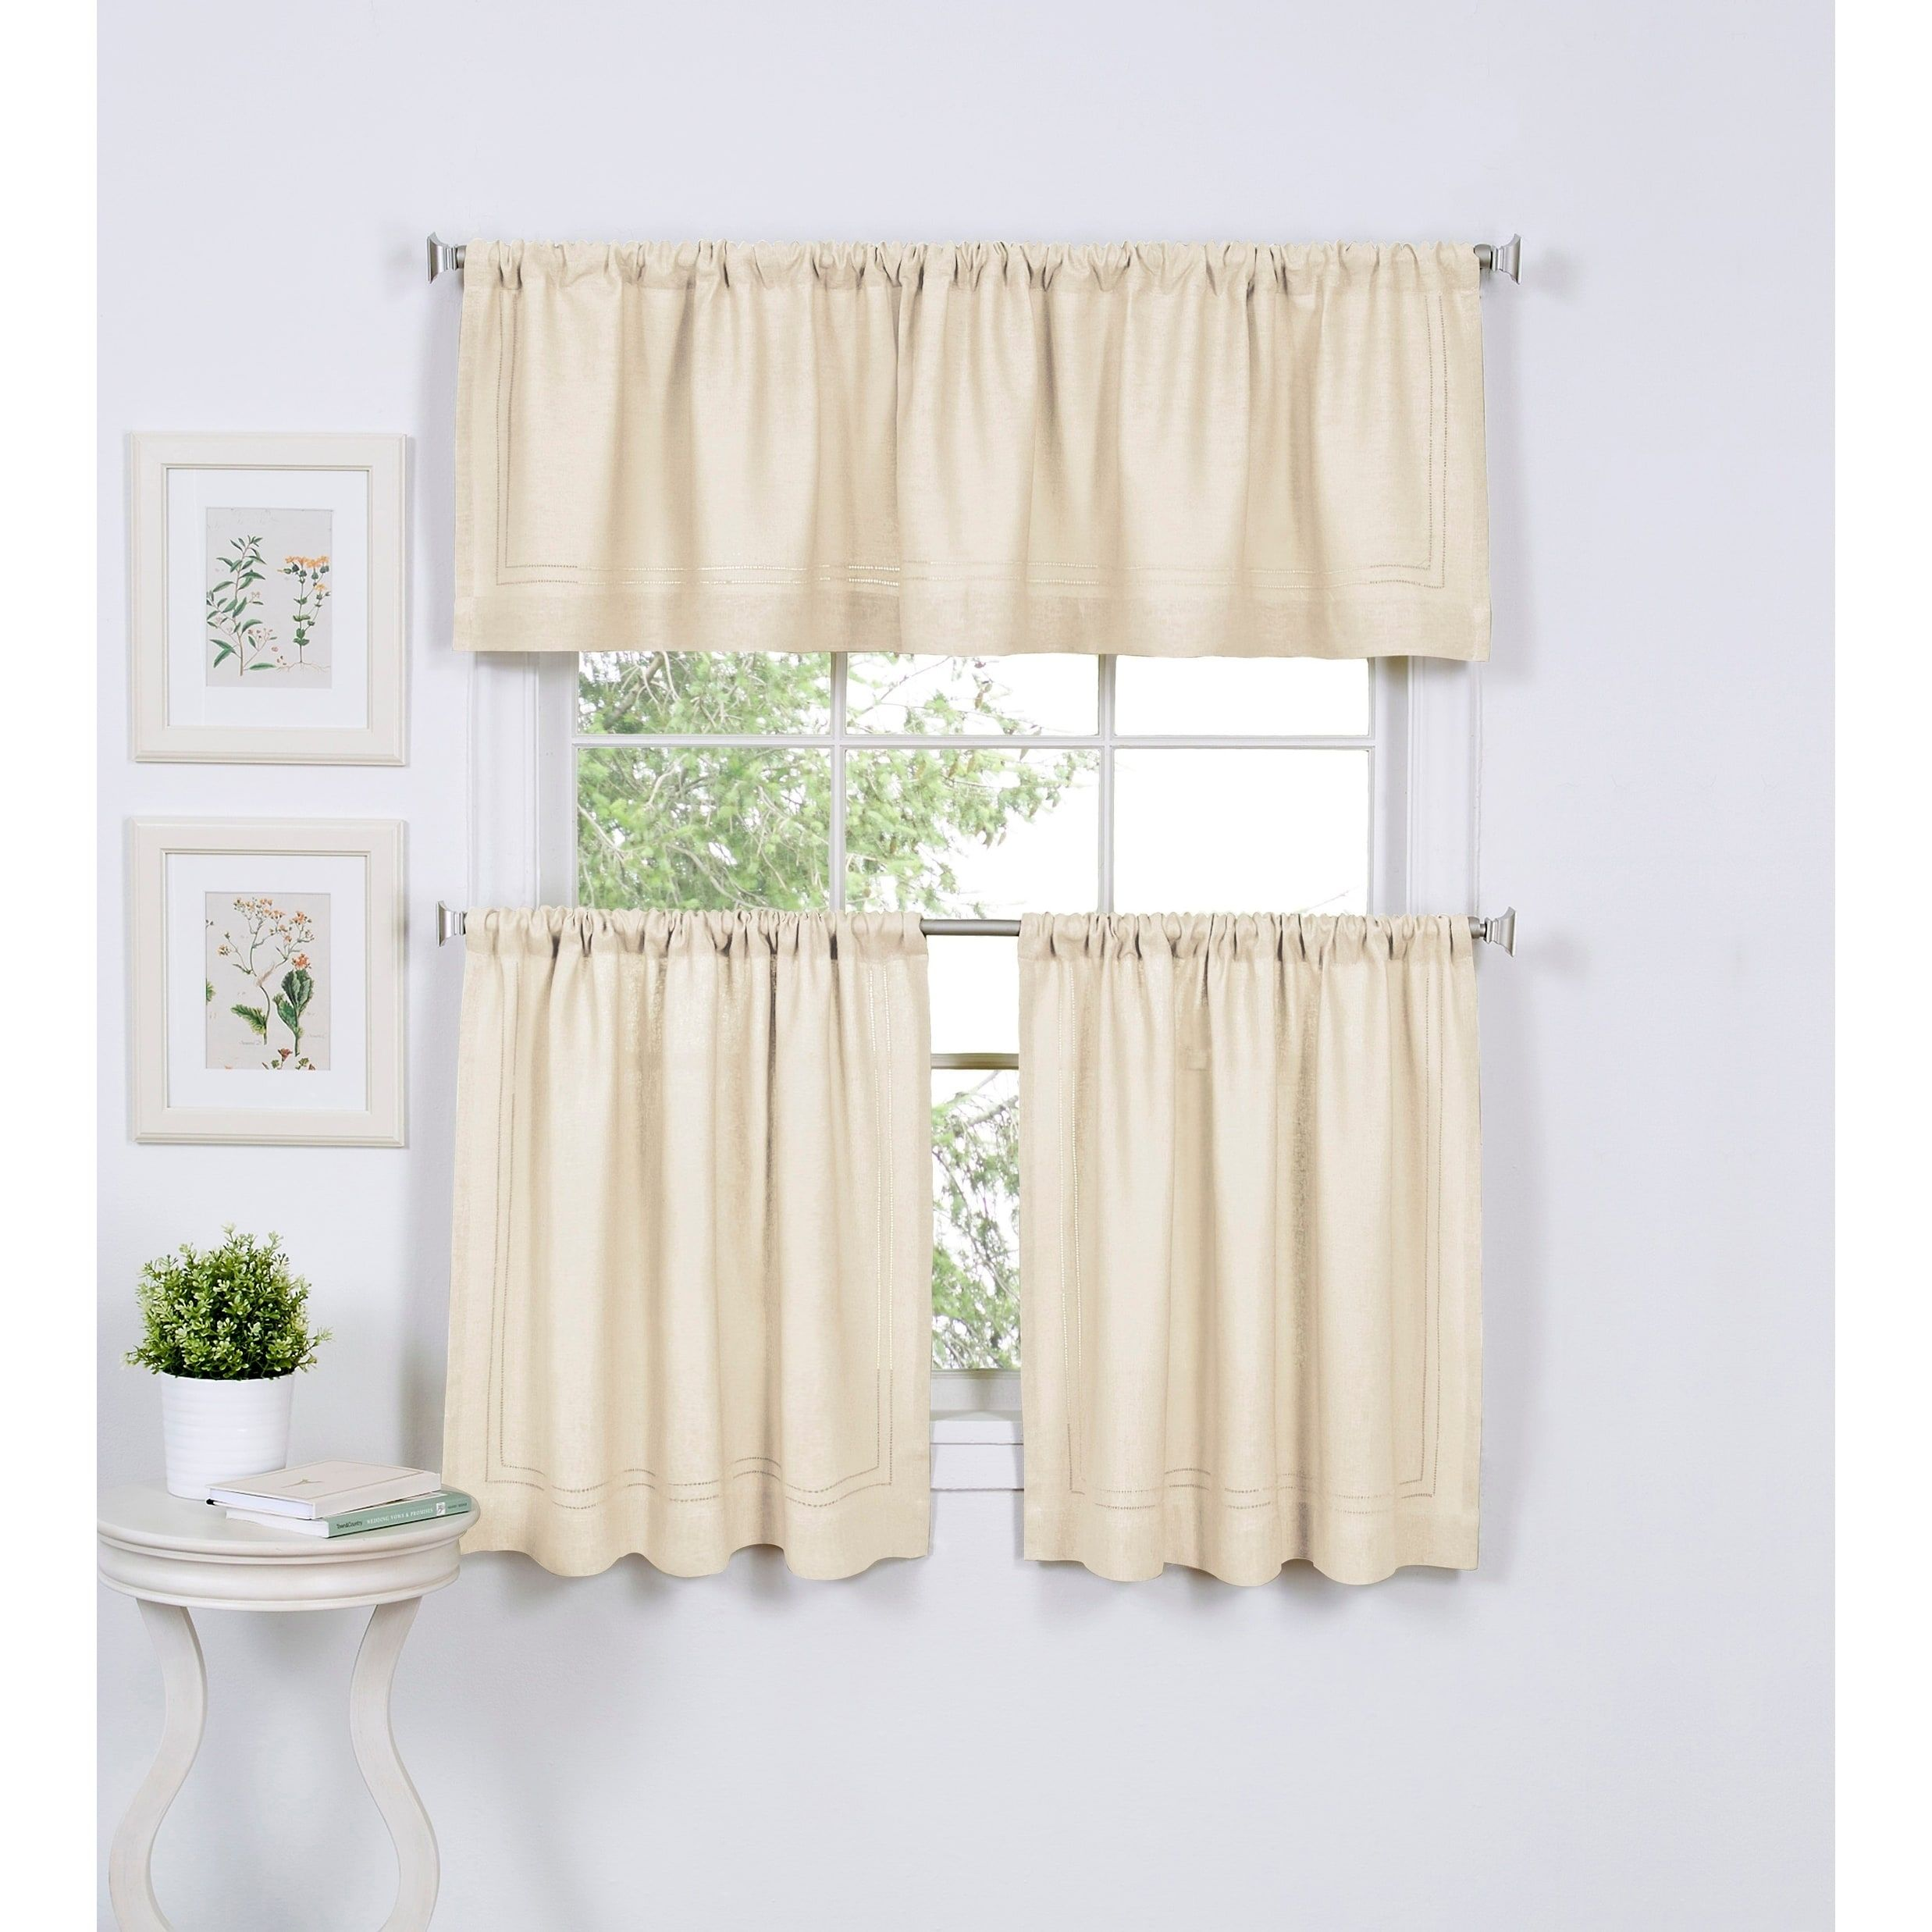 Elrene Cameron Rod Pocket Kitchen Tiers Set Of Two 30 W X 36 L Ivory Linen Solid Curtains Valance